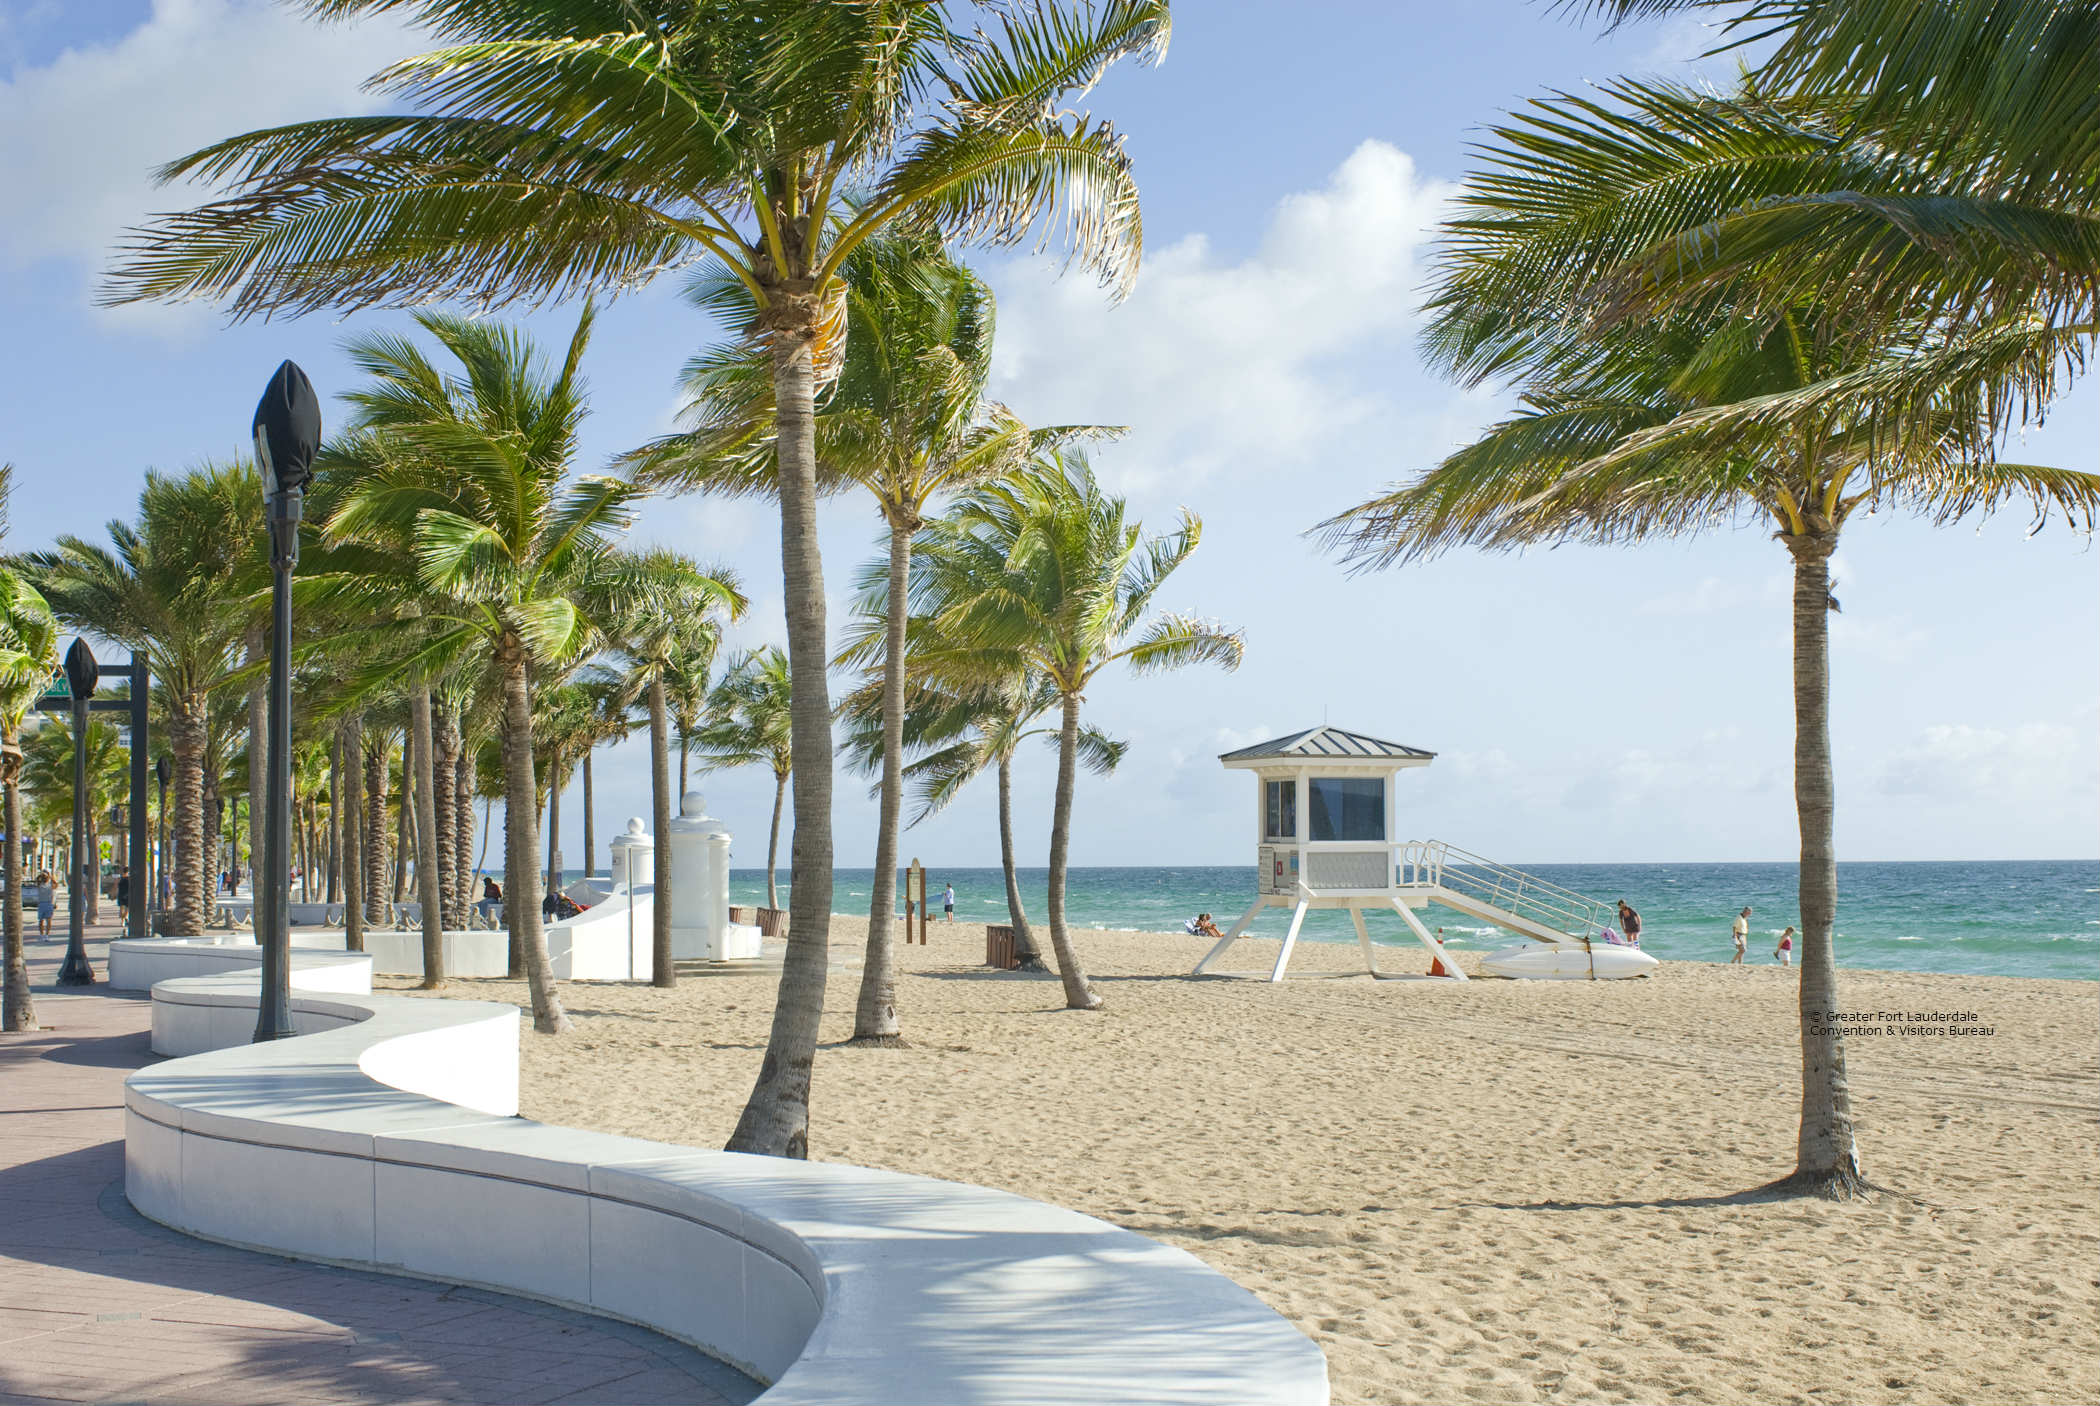 Things to Do in Ft. Lauderdale Beach